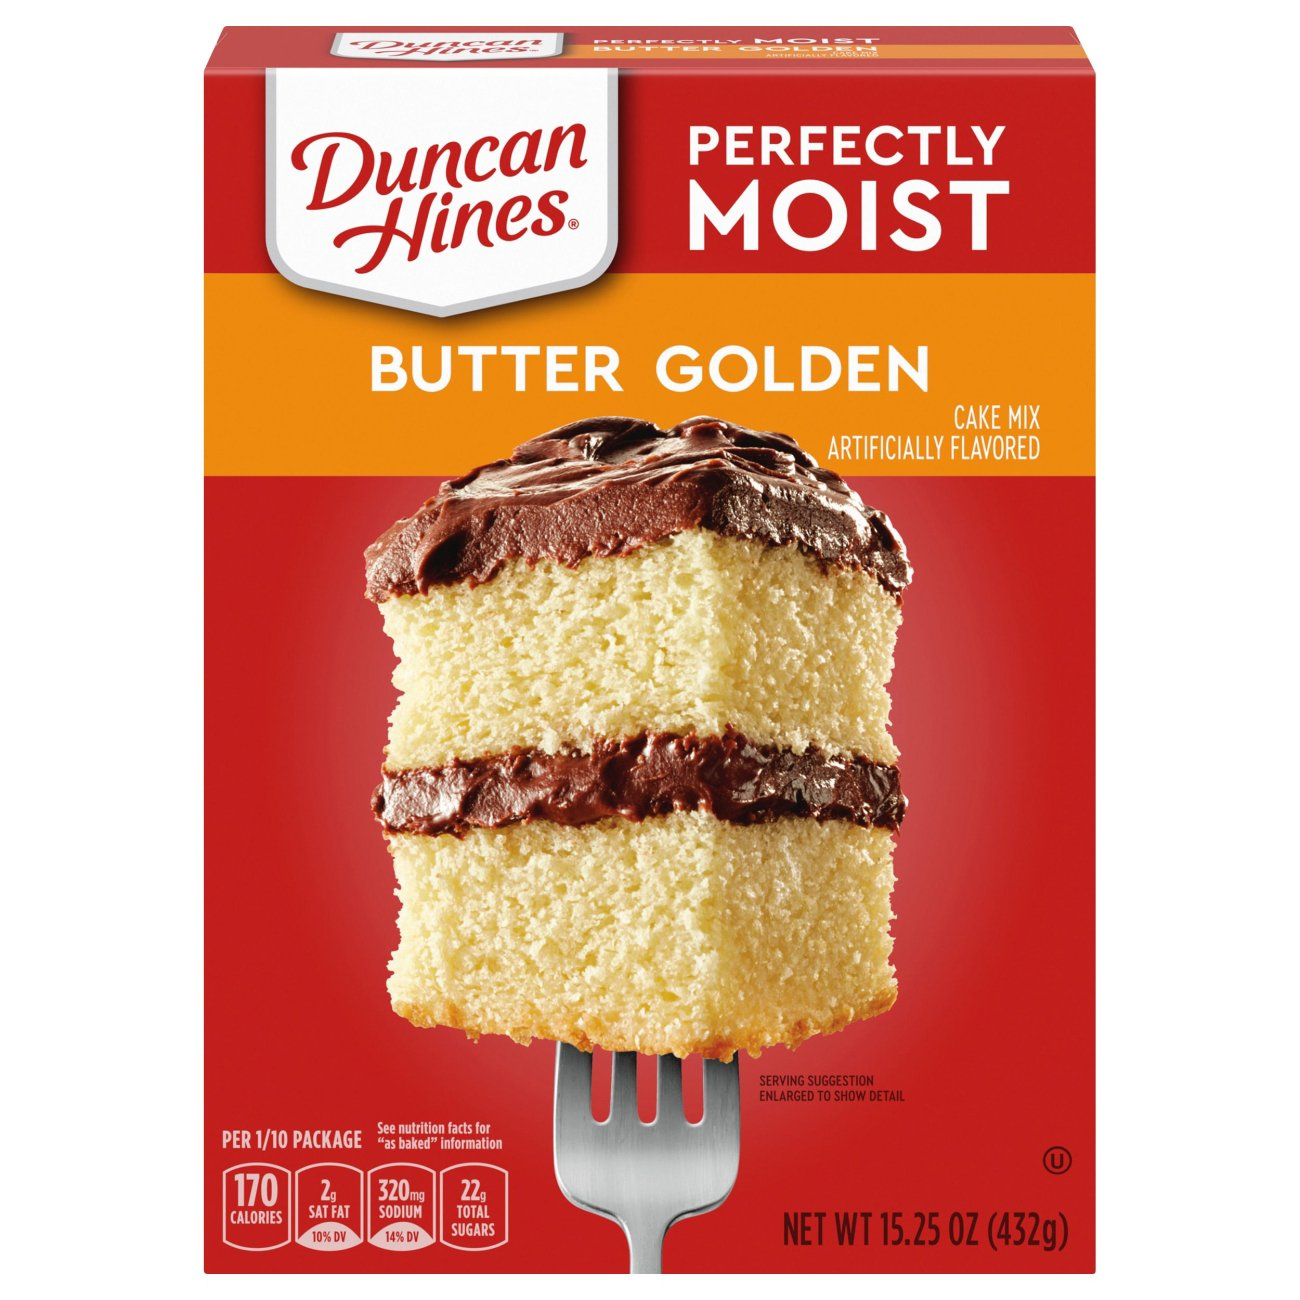 Cake Mix And Icing Shop Heb Everyday Low Prices Online